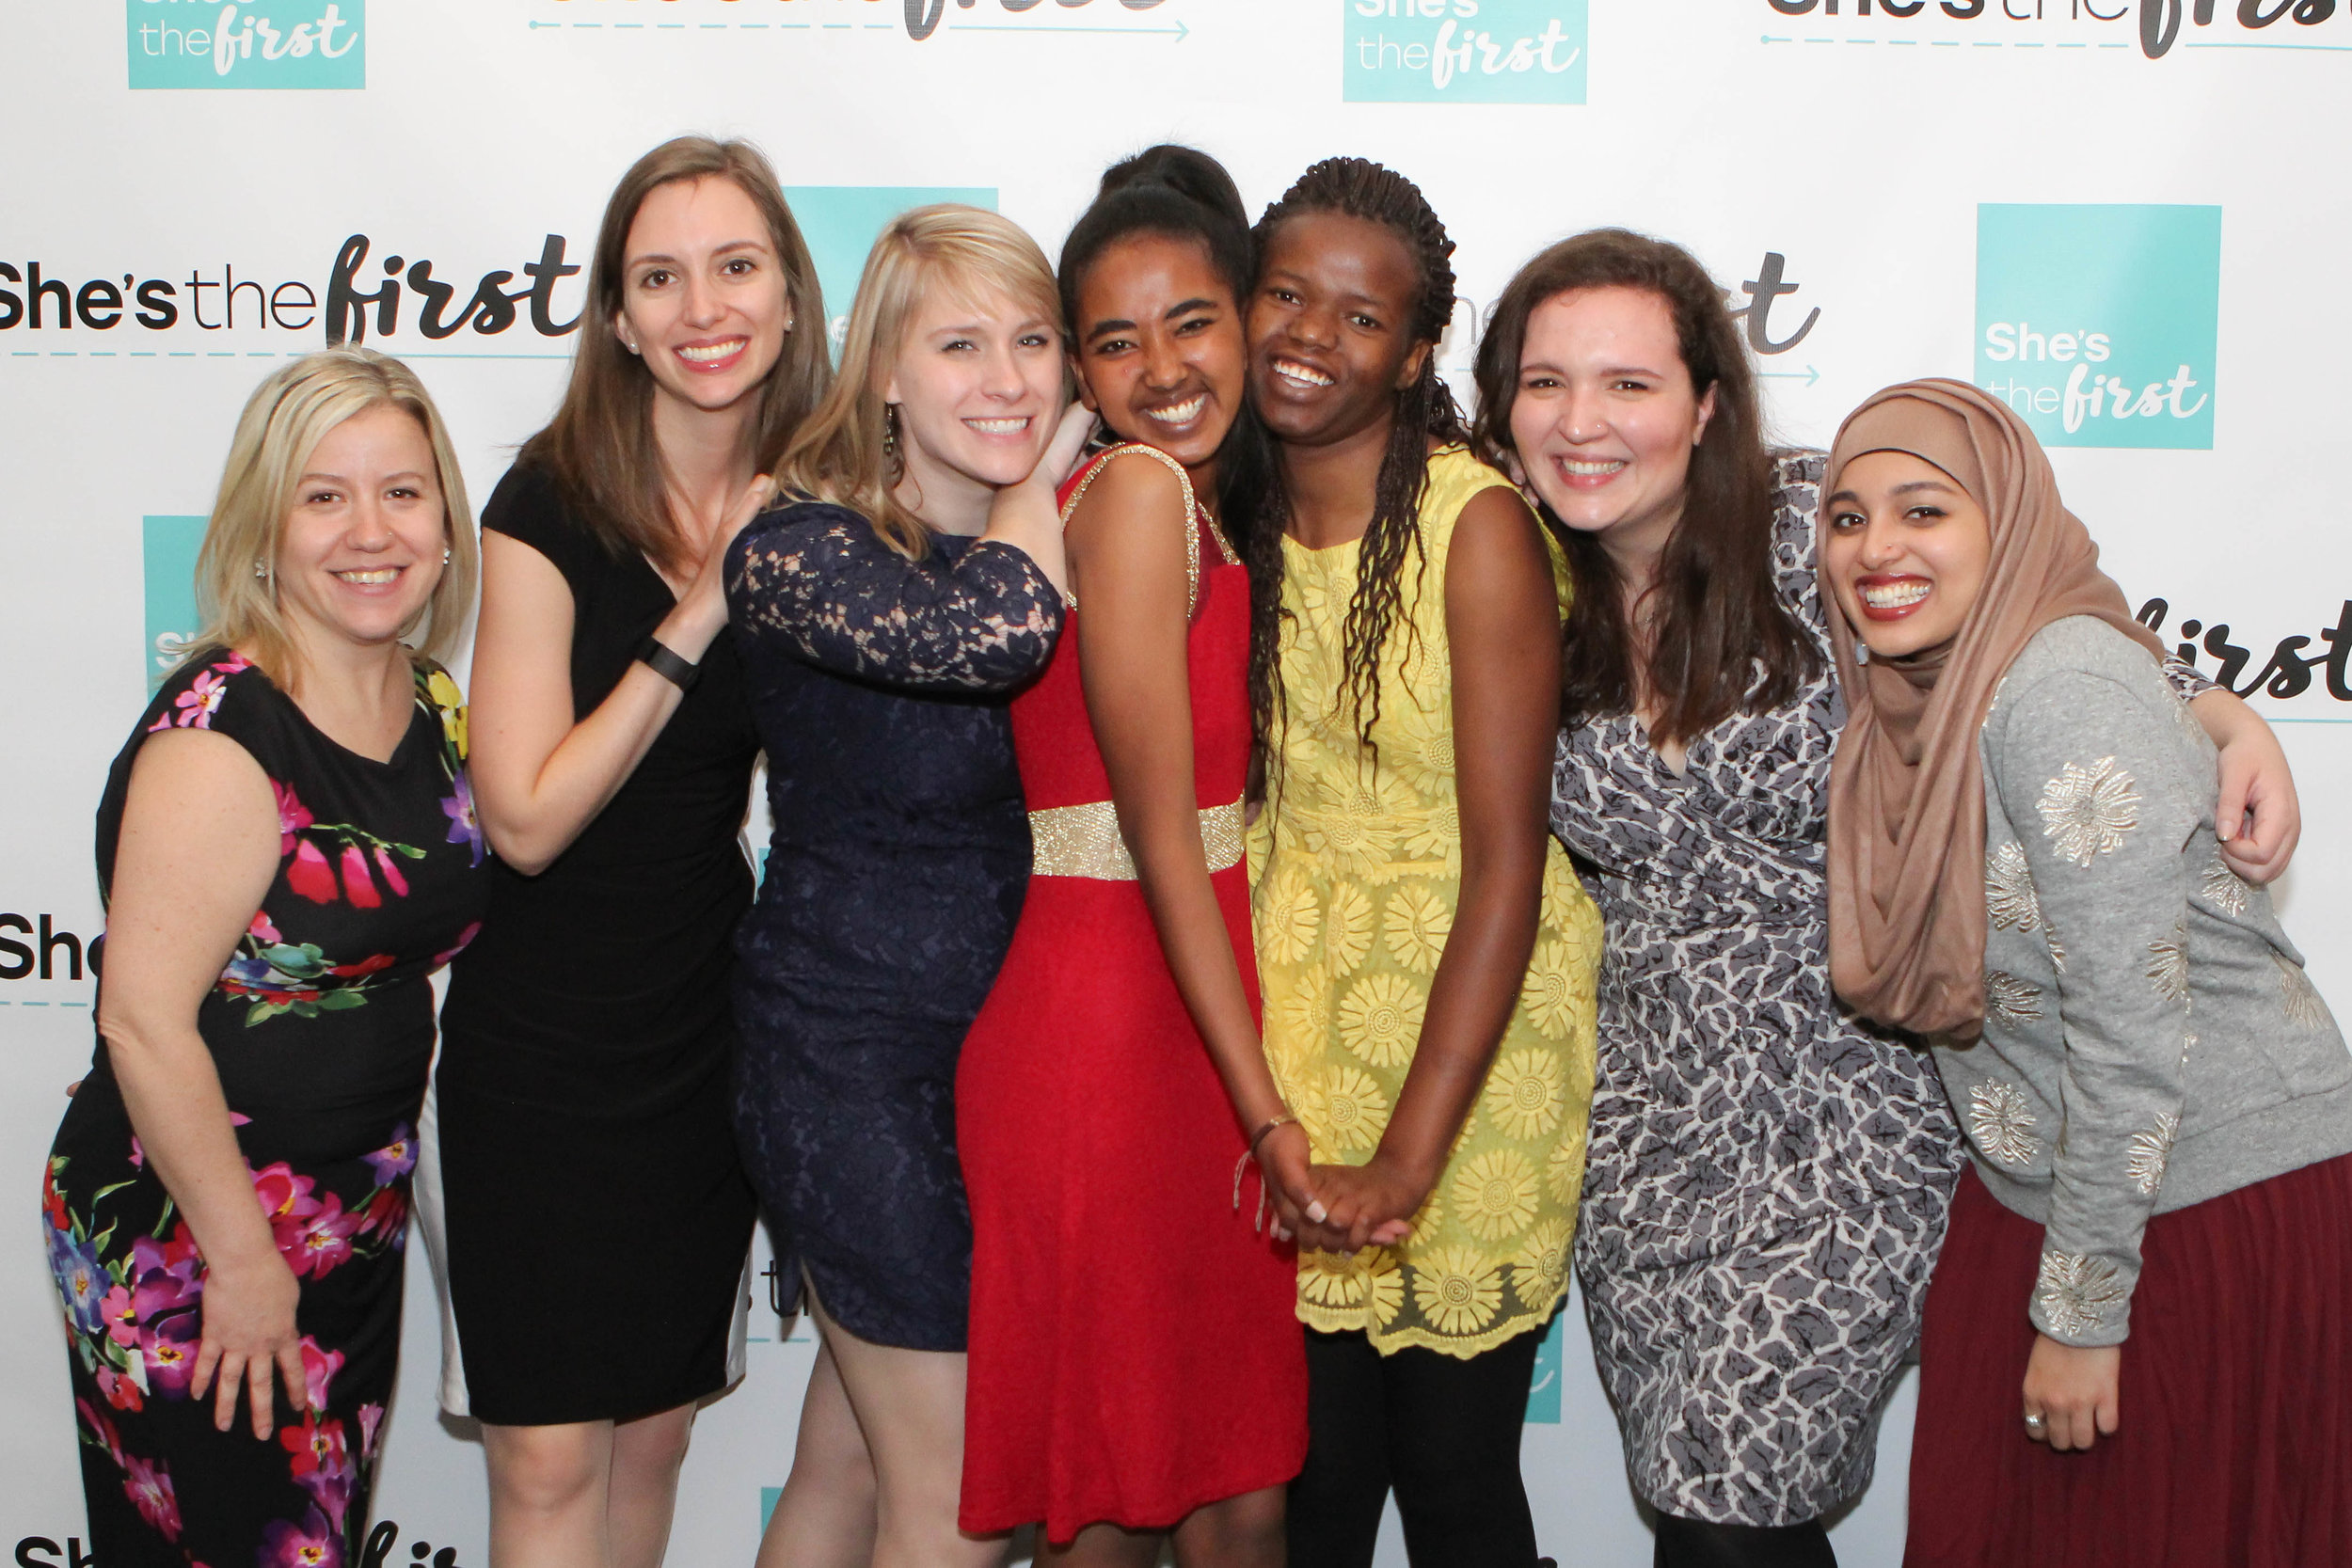 Tammy w%2F STF Staff & Scholars at 2016 Mentor Breakfast - photo by Jen Fitzpatrick.jpg